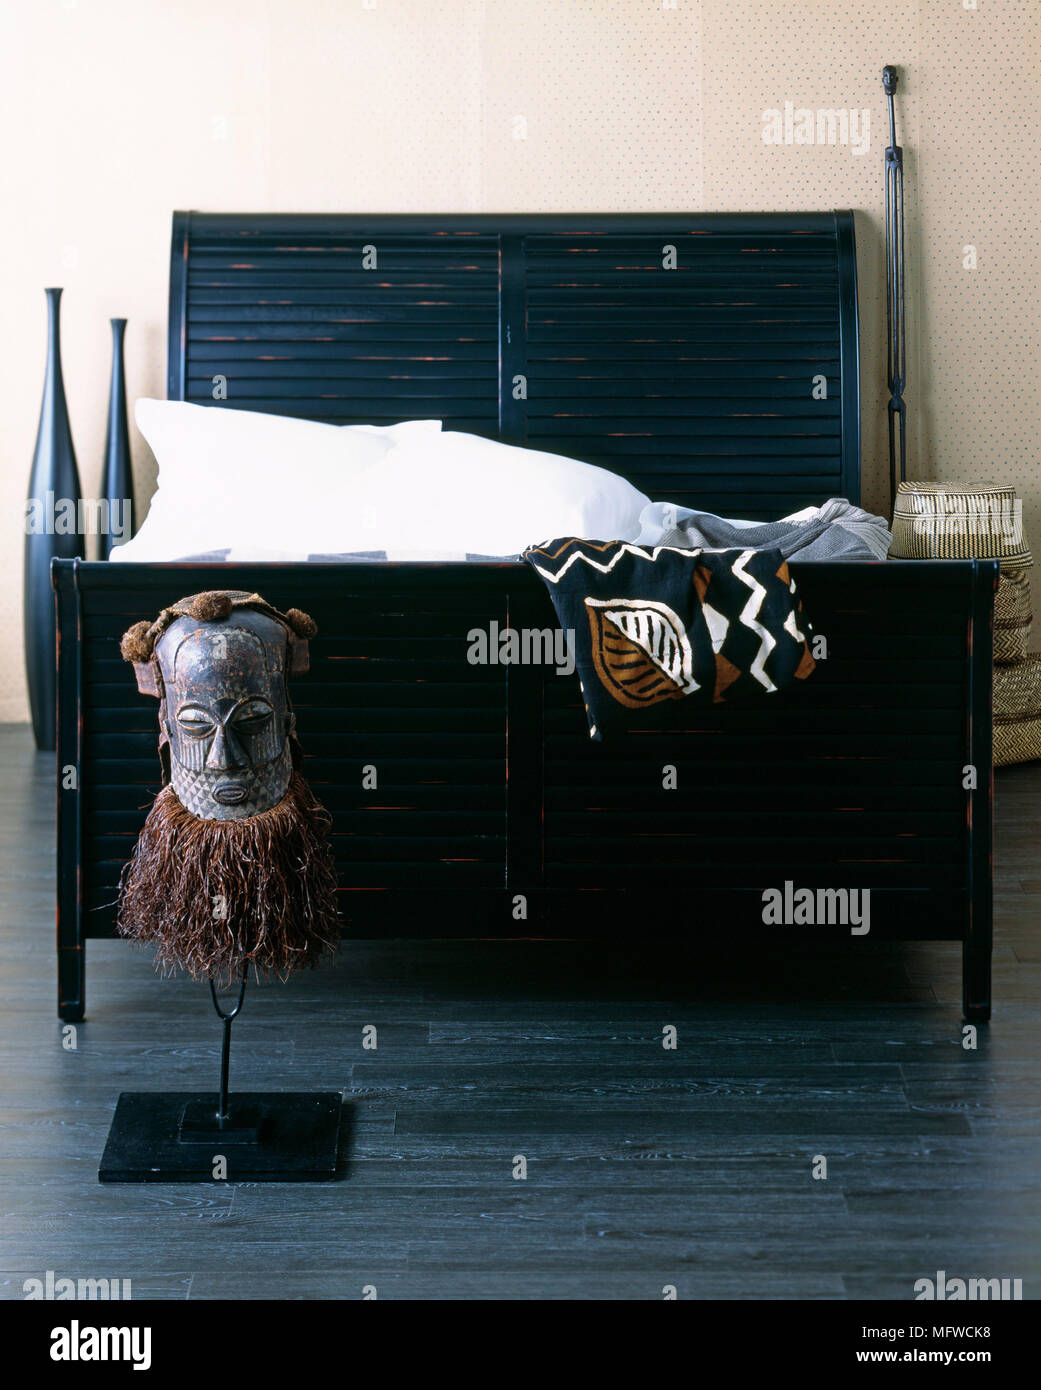 African Tribal Figure At End Of Black Painted Wooden Bed With Slatted Headboard Stock Photo Alamy